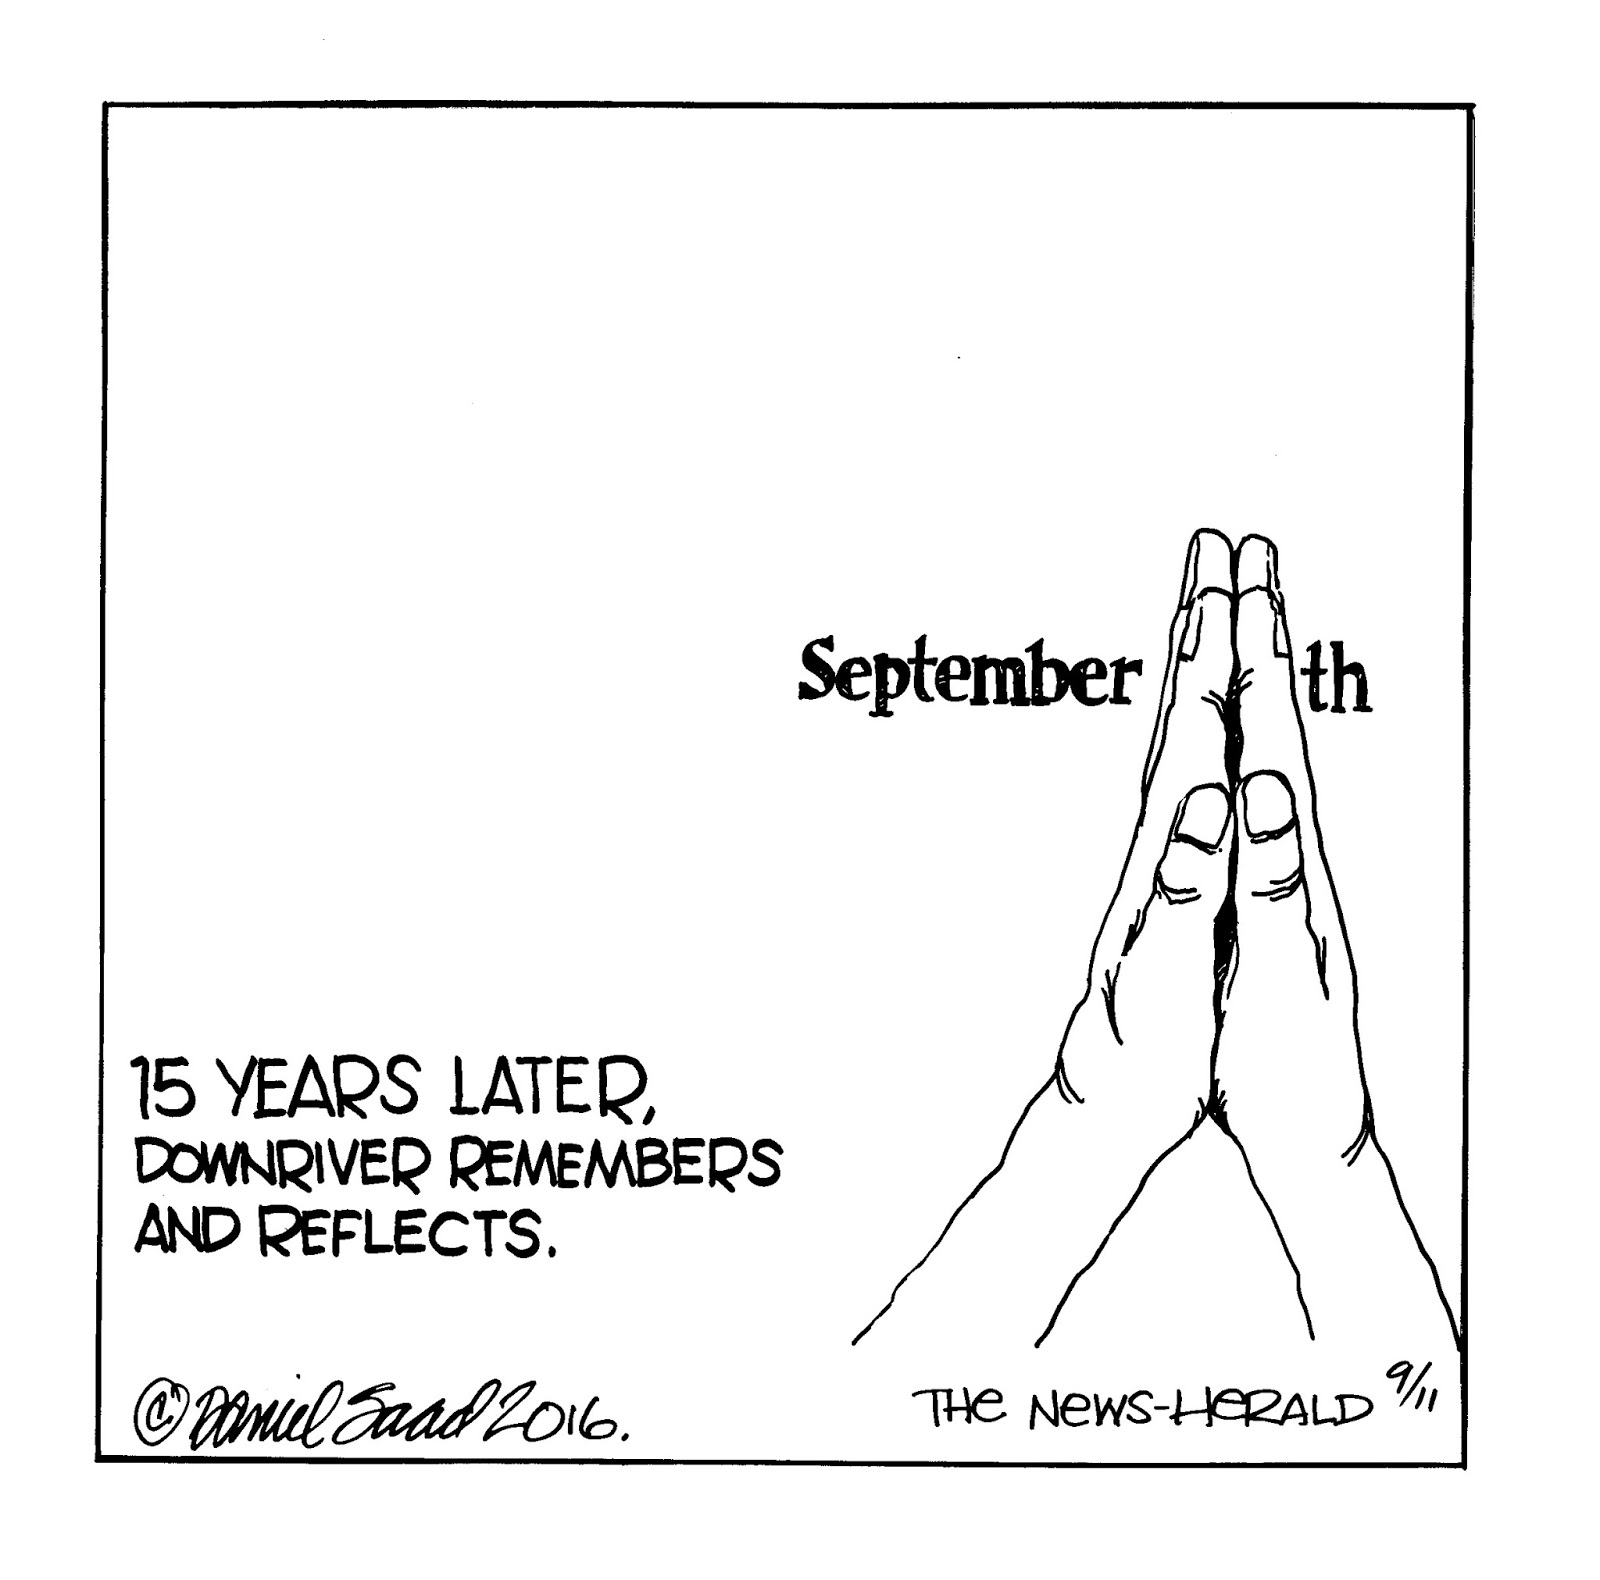 Personal Memories about the Terrorist Attacks of September 11, 2001